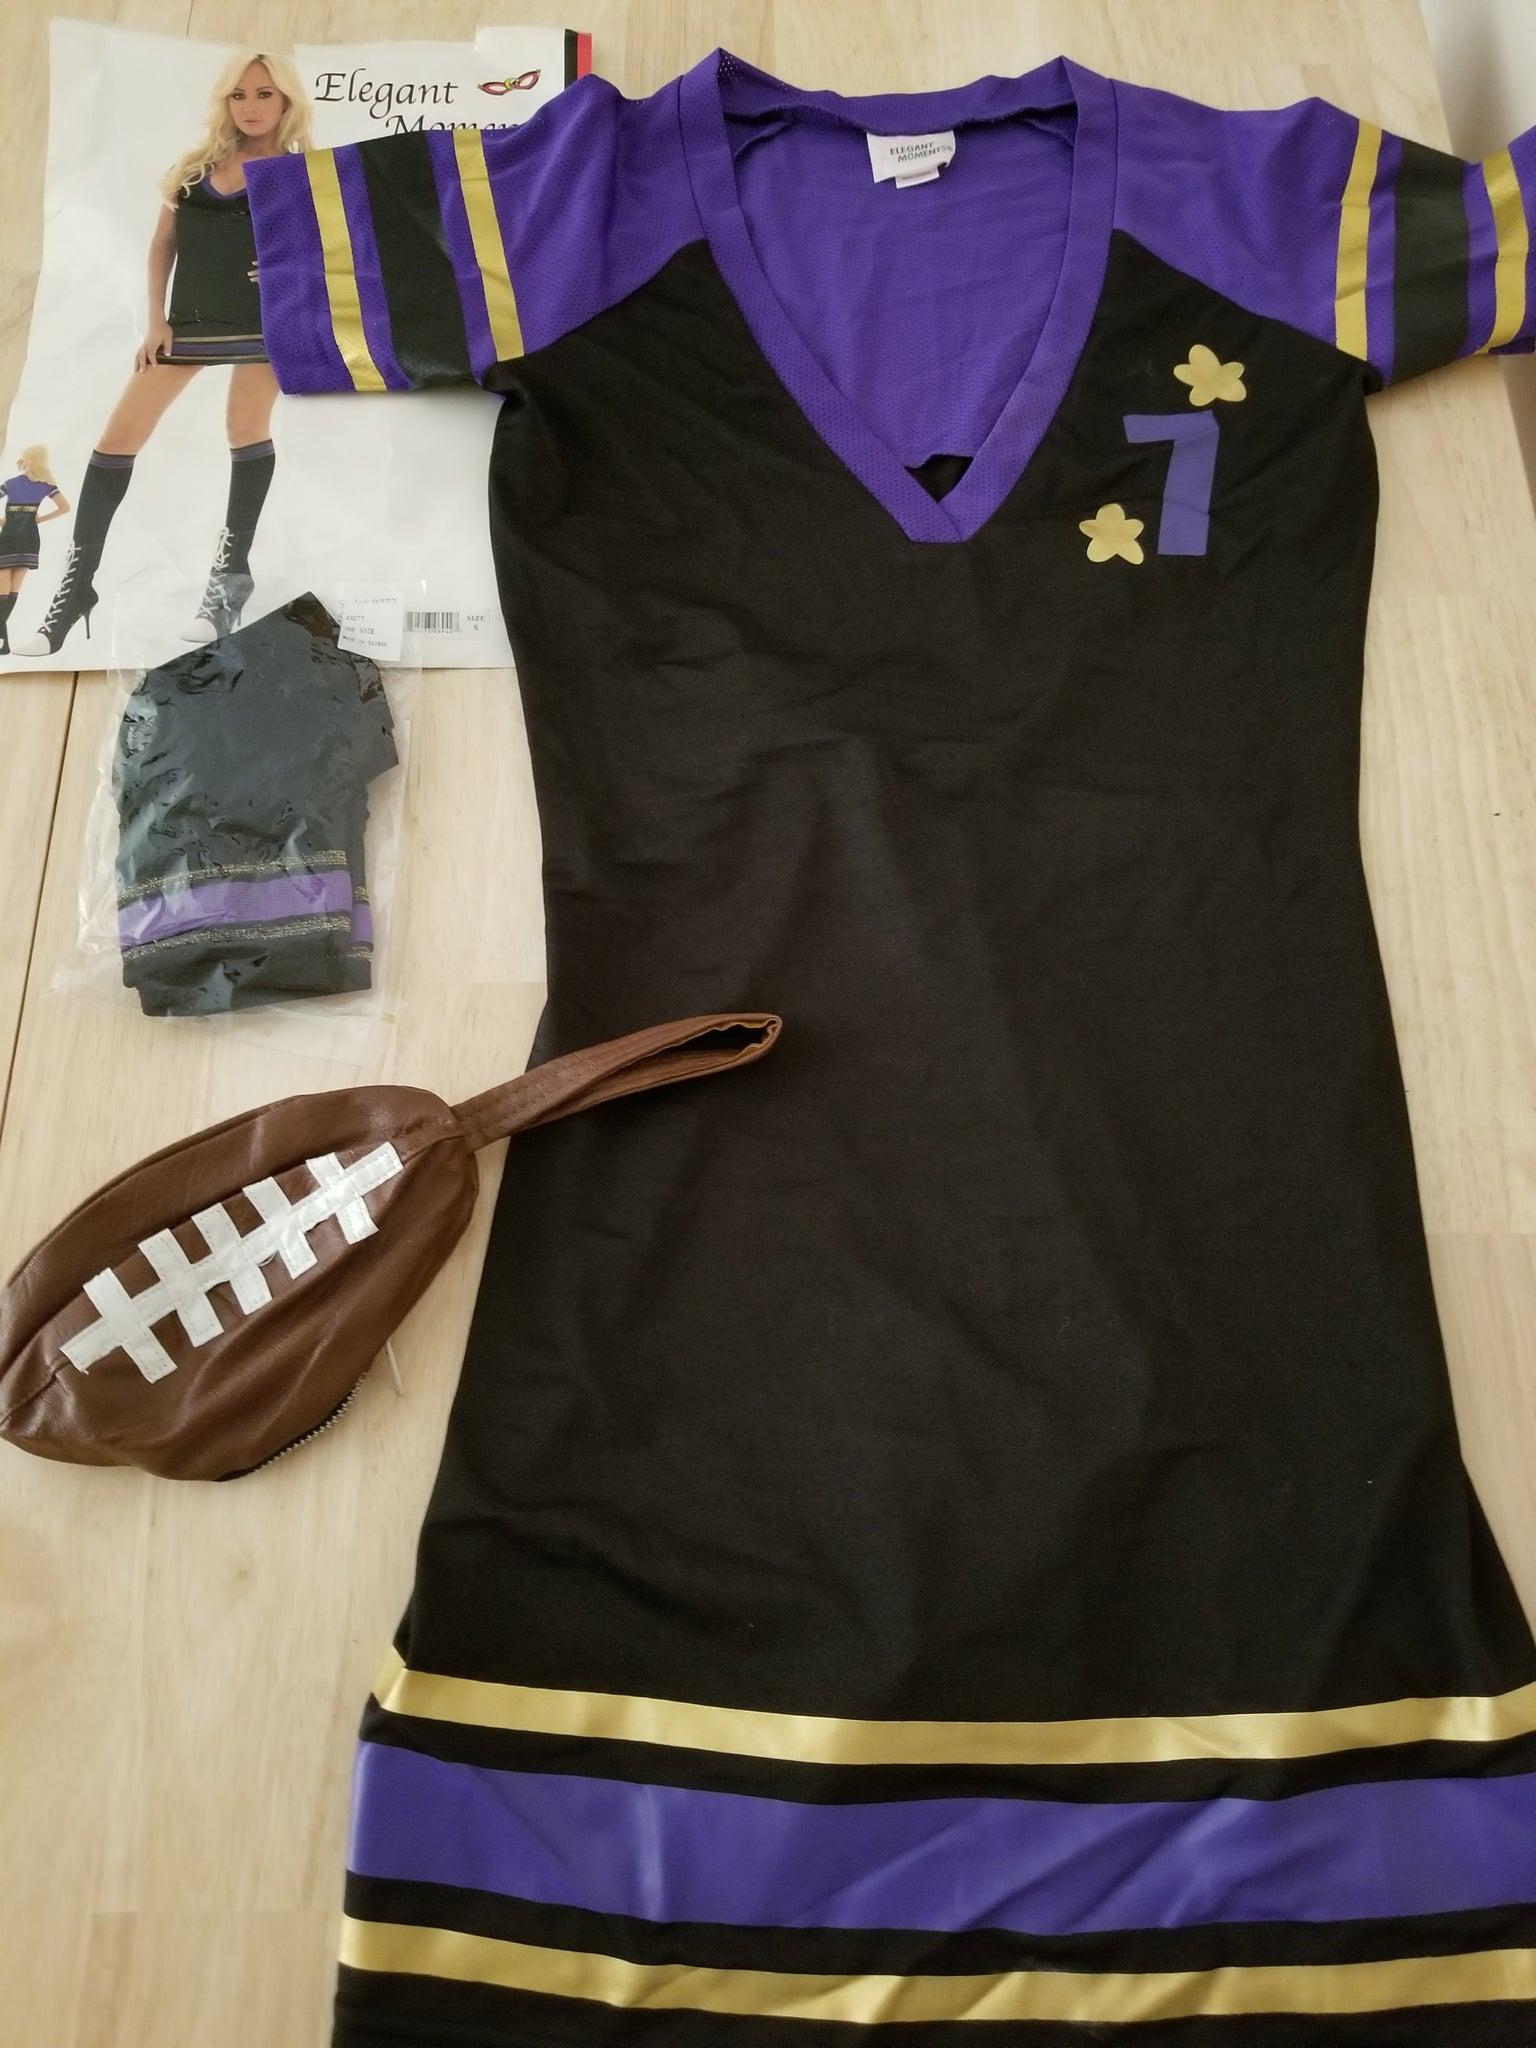 Elegant Moments Size Small Football Outfit